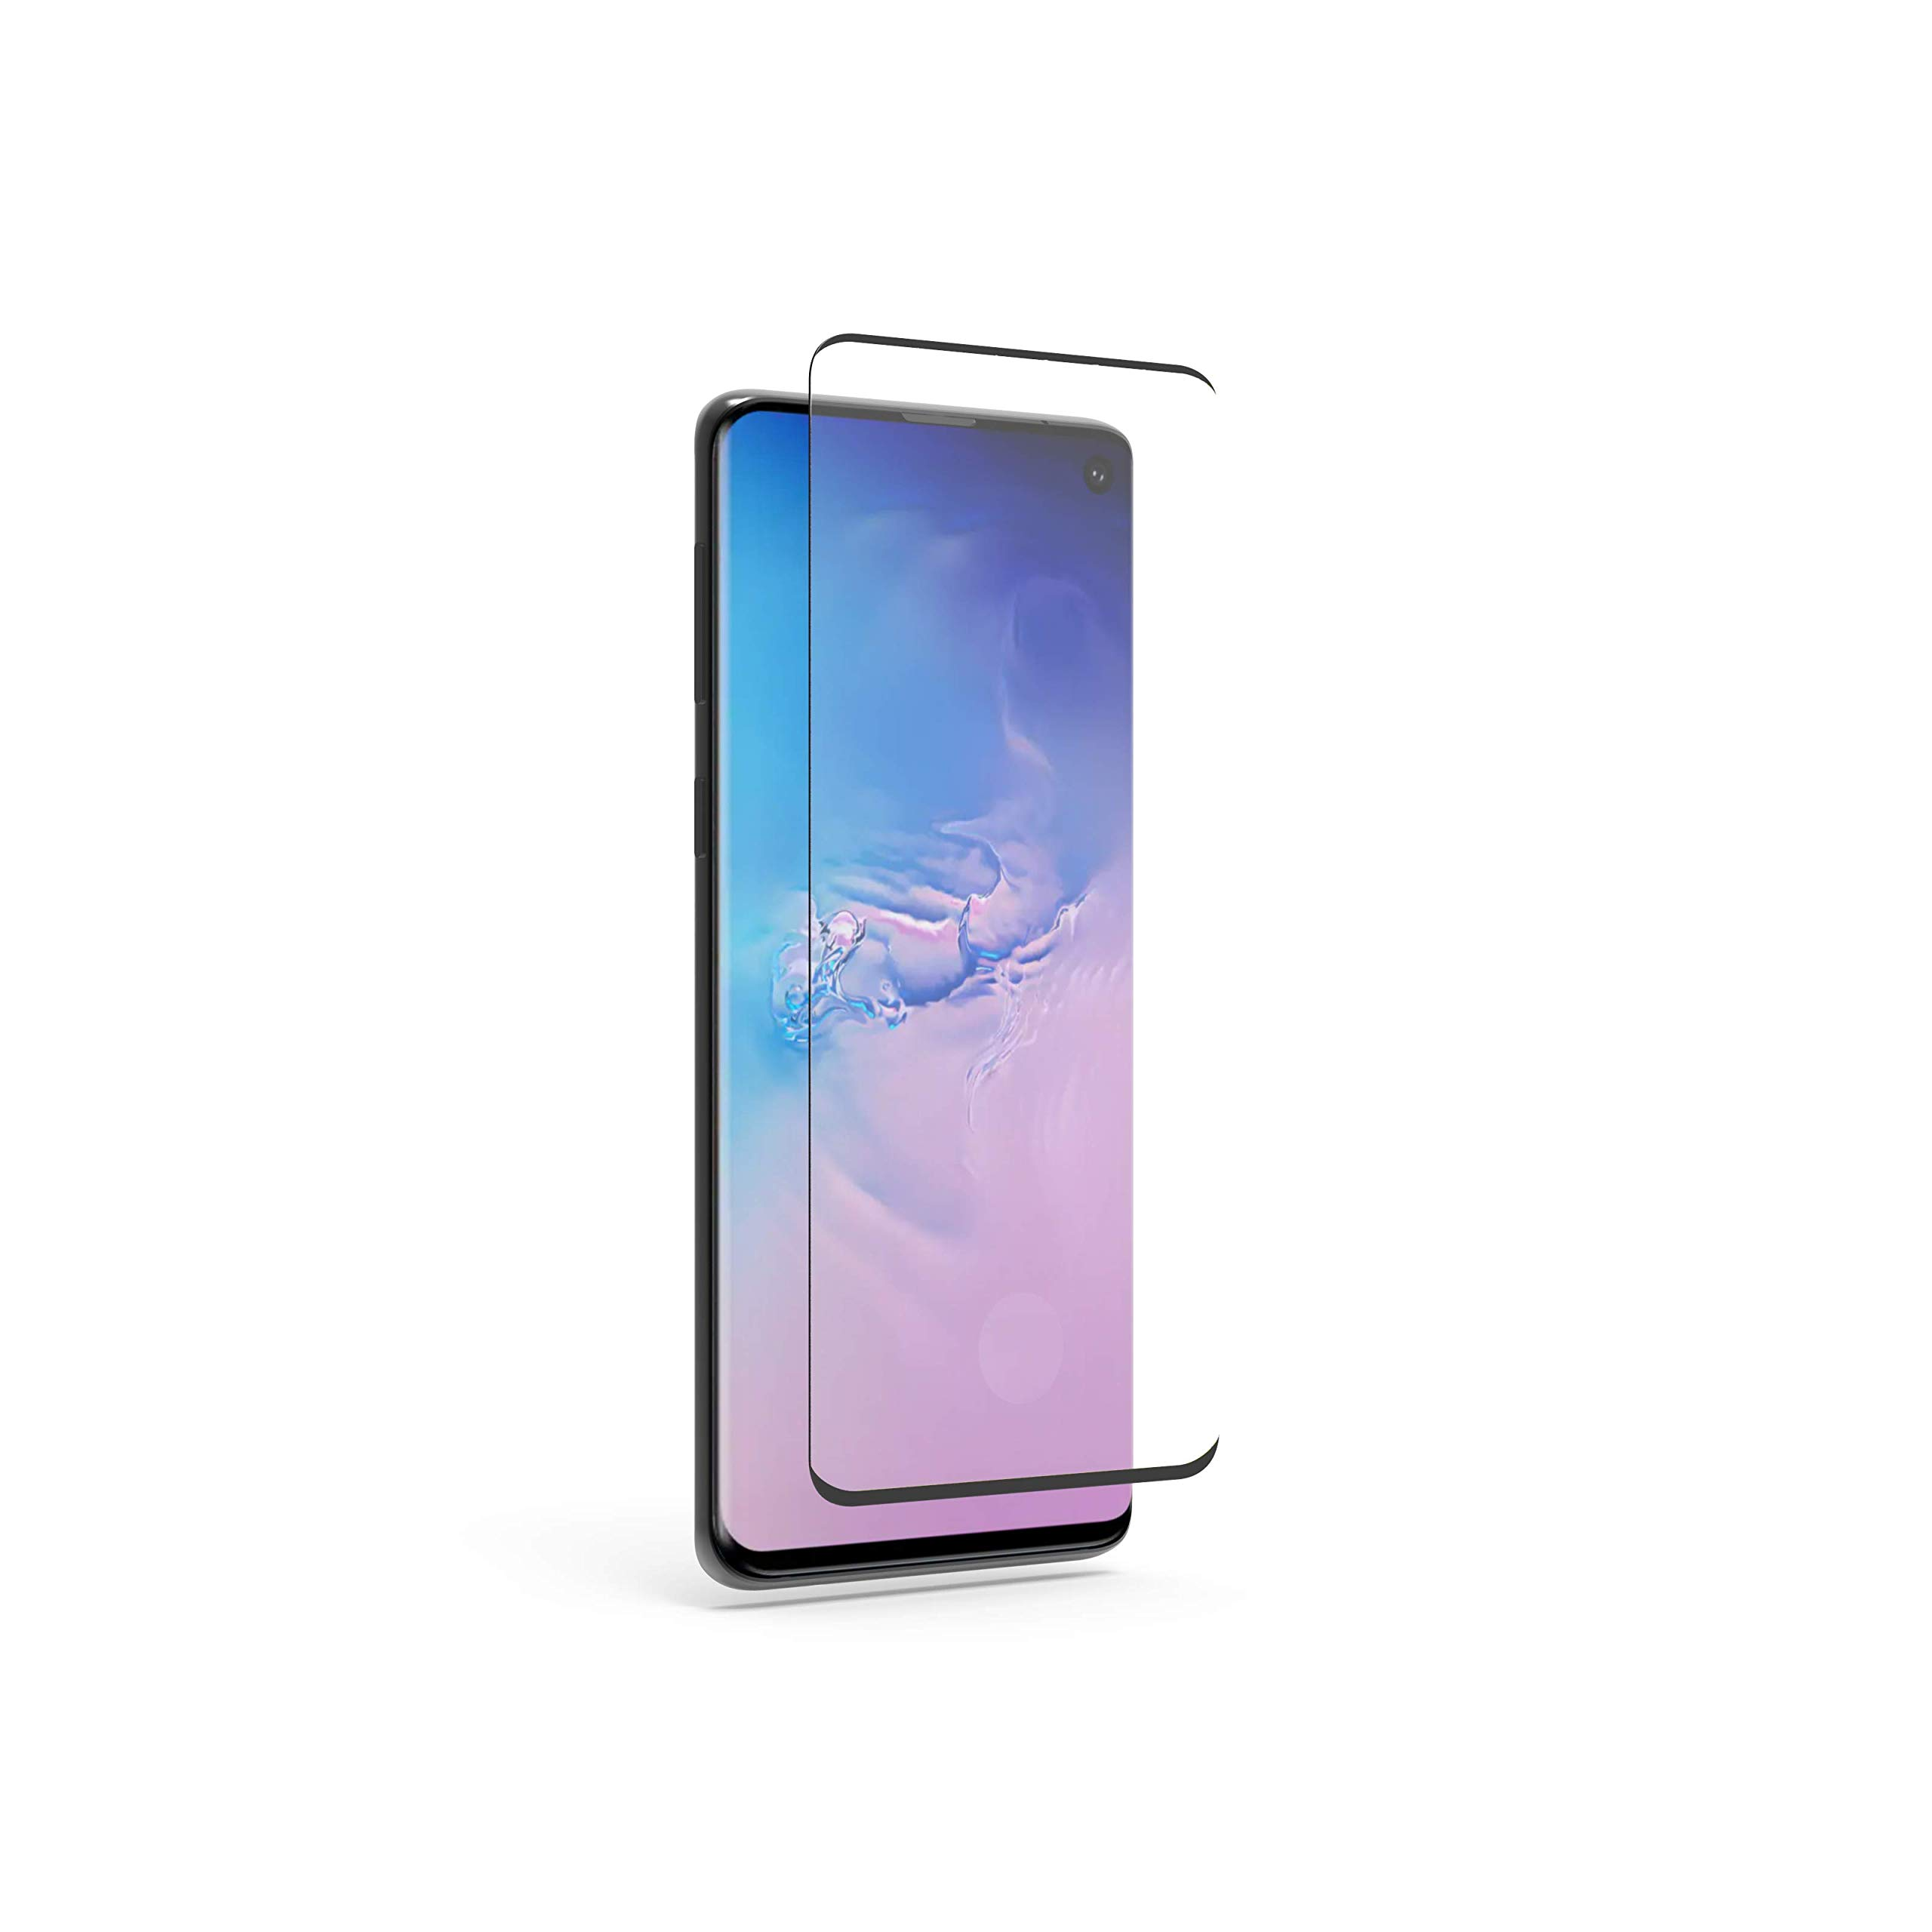 PureGear for Samsung Galaxy S10 Tempered Glass Screen Protector with Fingerprint Sensor Ready Cutout, Self Alignment Tray, Touch and Swipe Precision, Premium Protection Guard, Case Friendly by PureGear